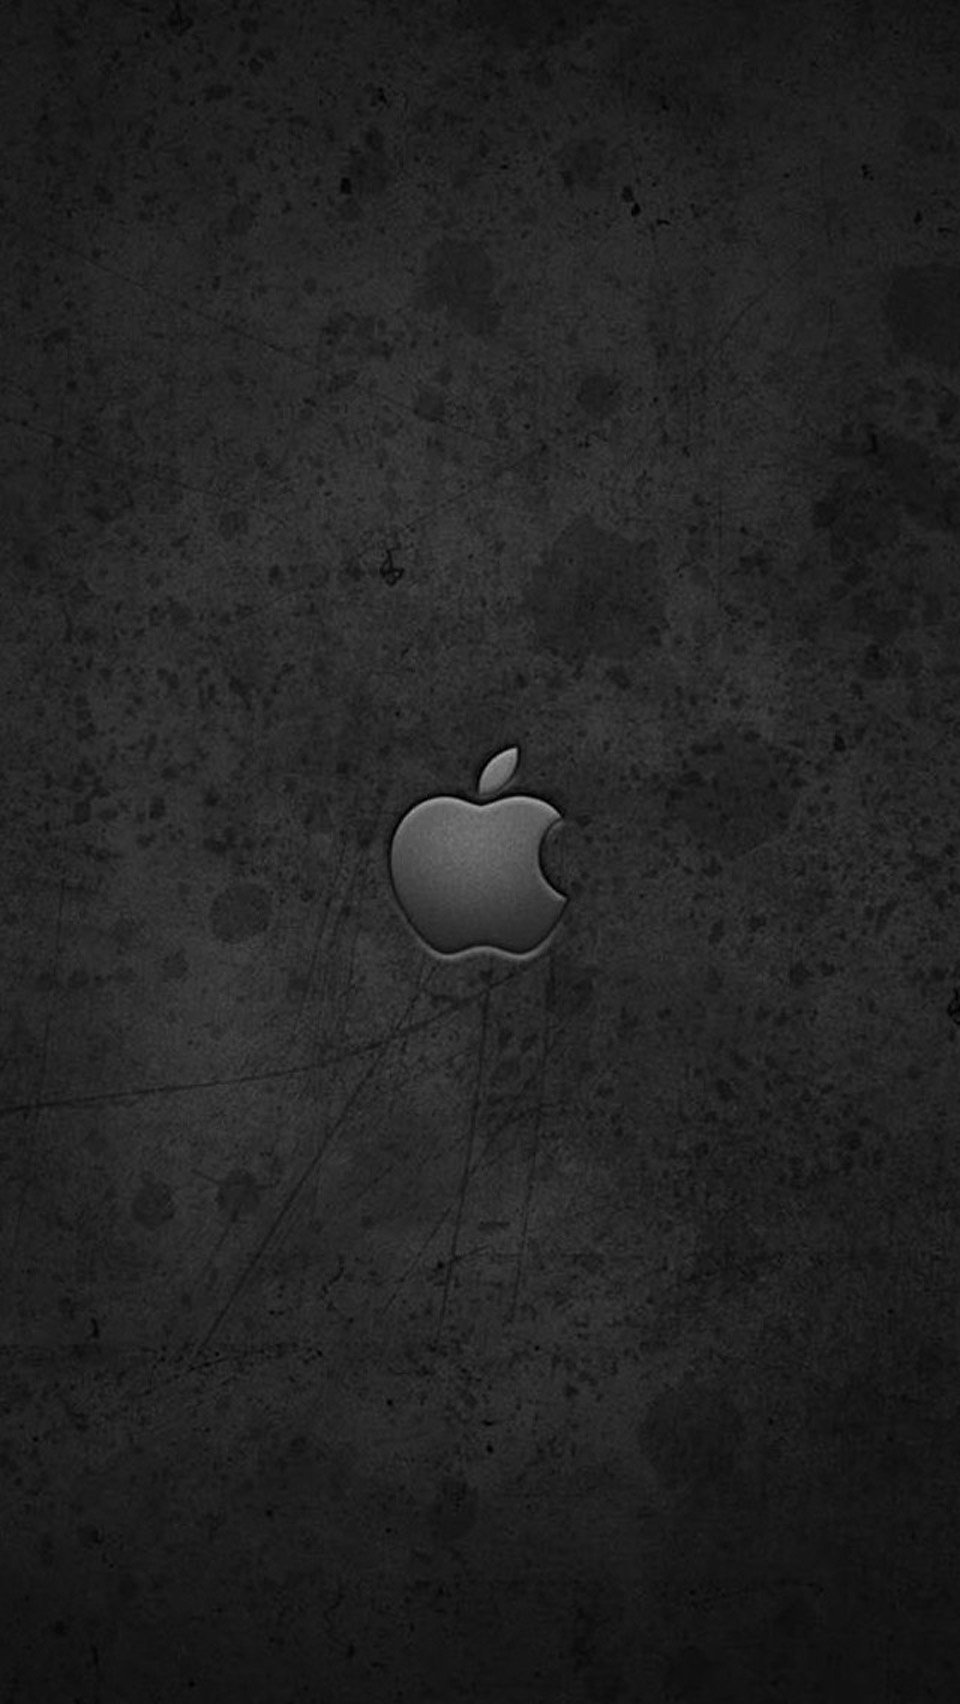 Apple Logo Wallpaper For Iphone 6 photos of Iphone Wallpaper Size 960x1704